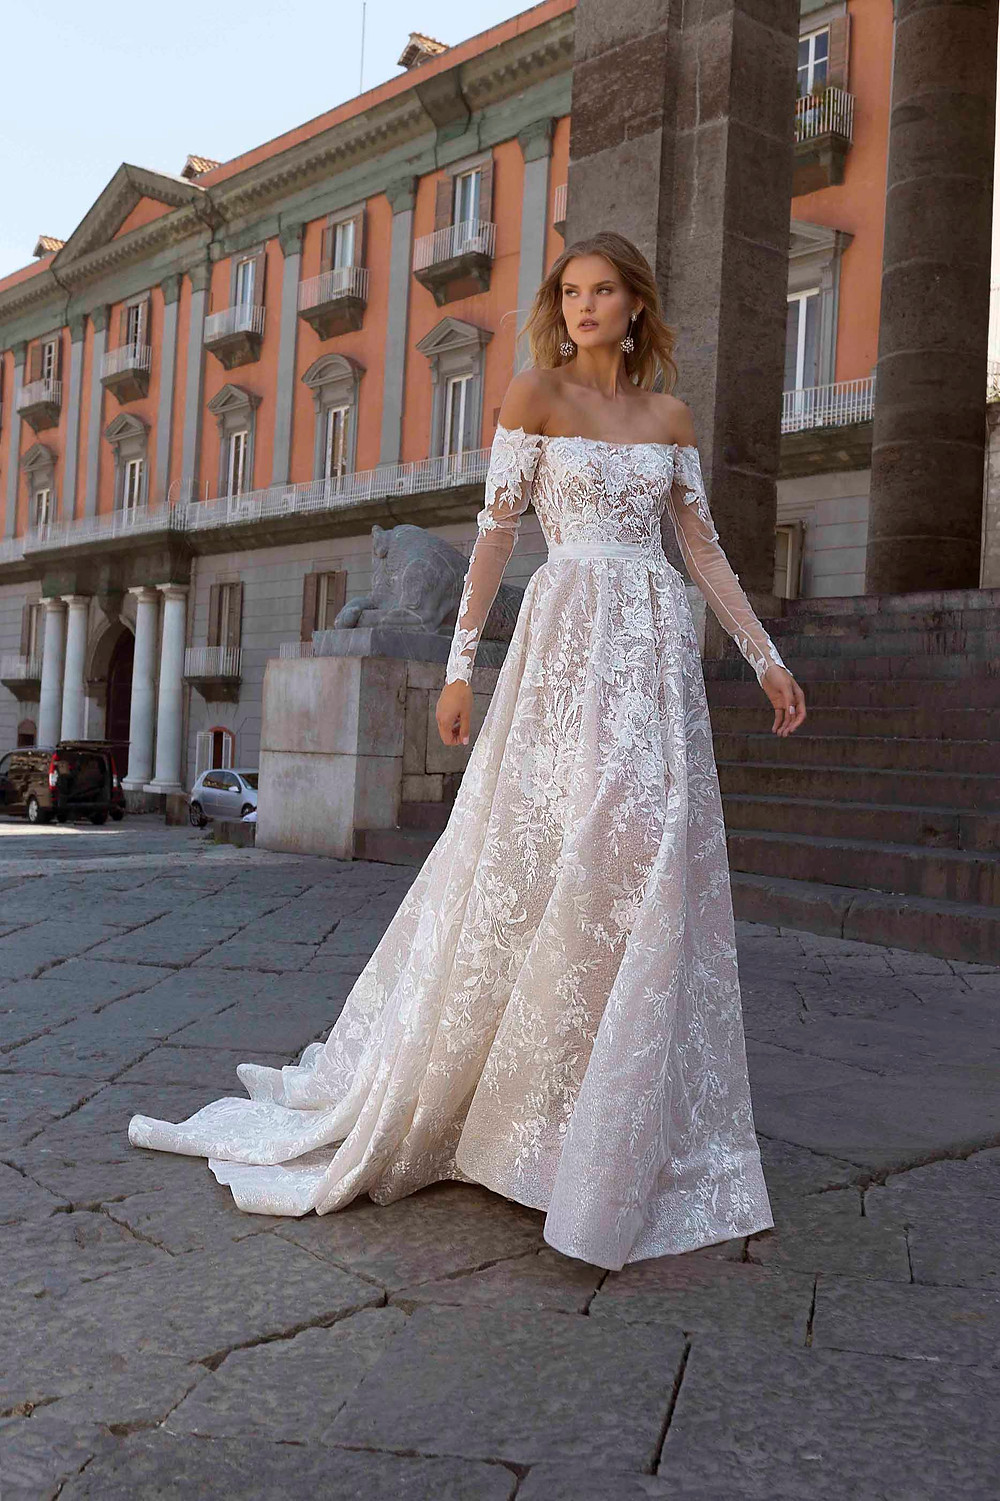 A Berta 2020 off the shoulder, A-line wedding dress, with long illusion sleeves and lace